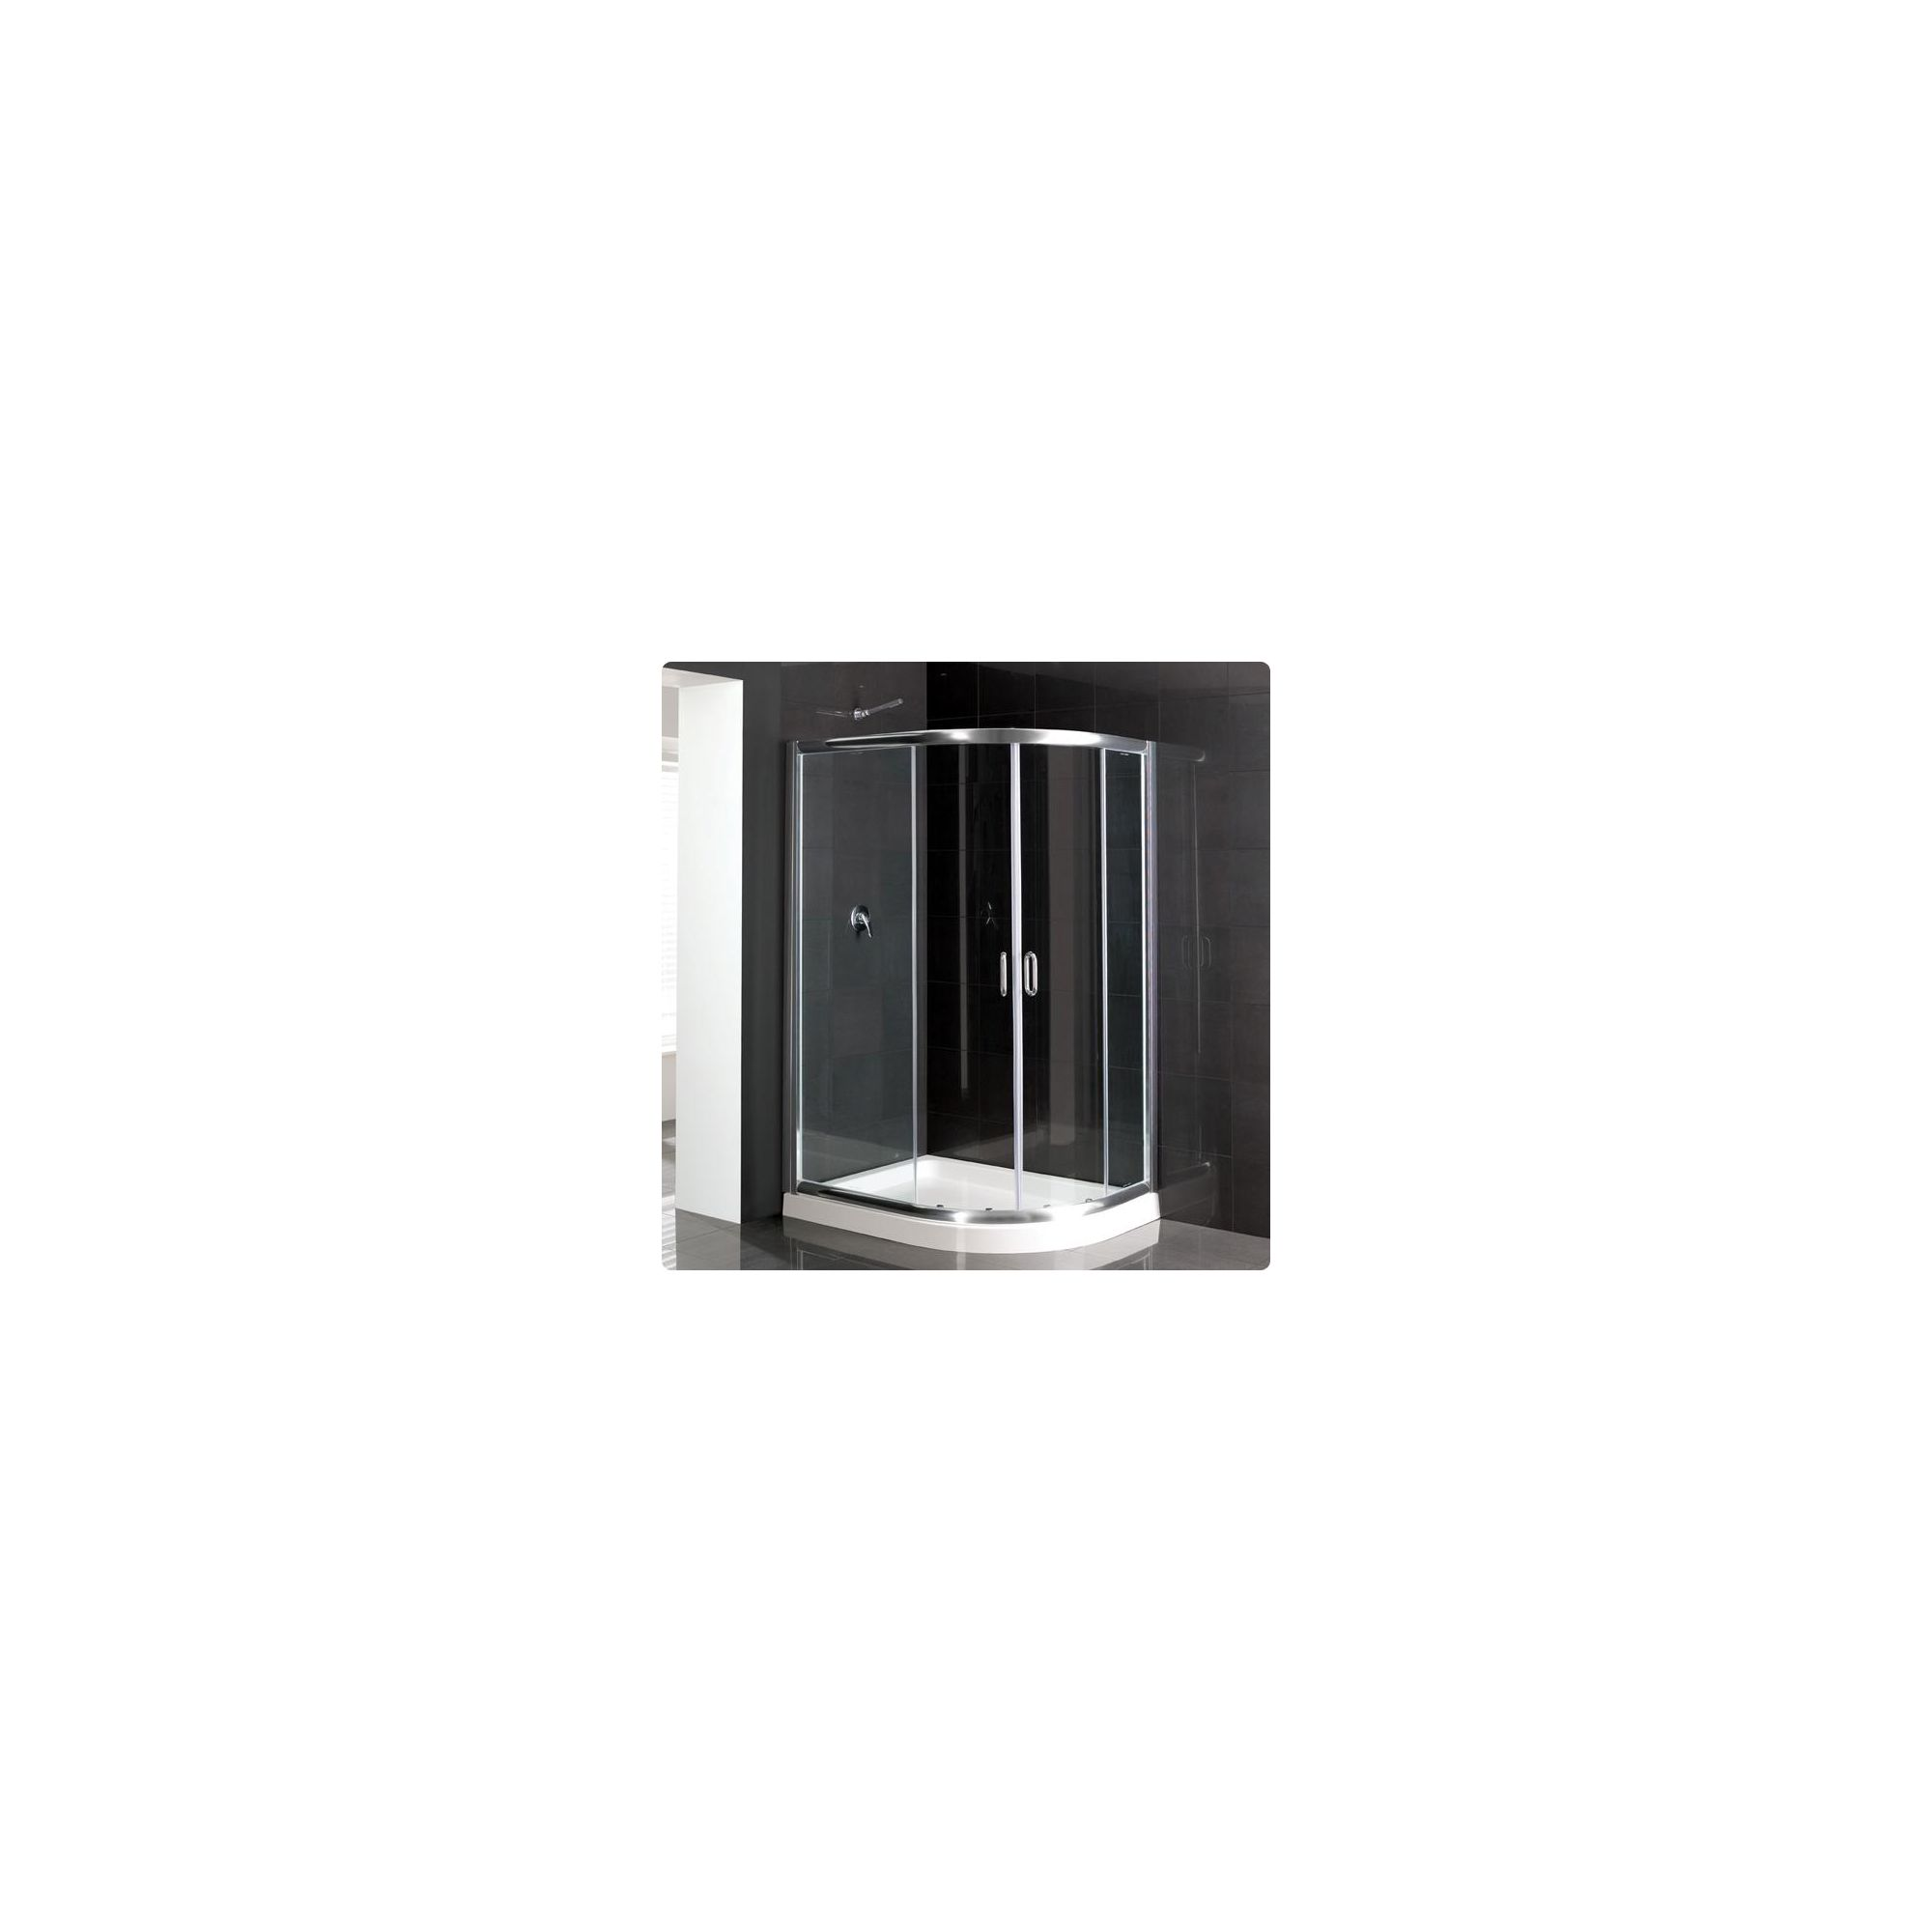 Duchy Elite Silver Offset Quadrant Shower Enclosure (Complete with Tray) 1200mm x 900mm, 6mm Glass at Tesco Direct